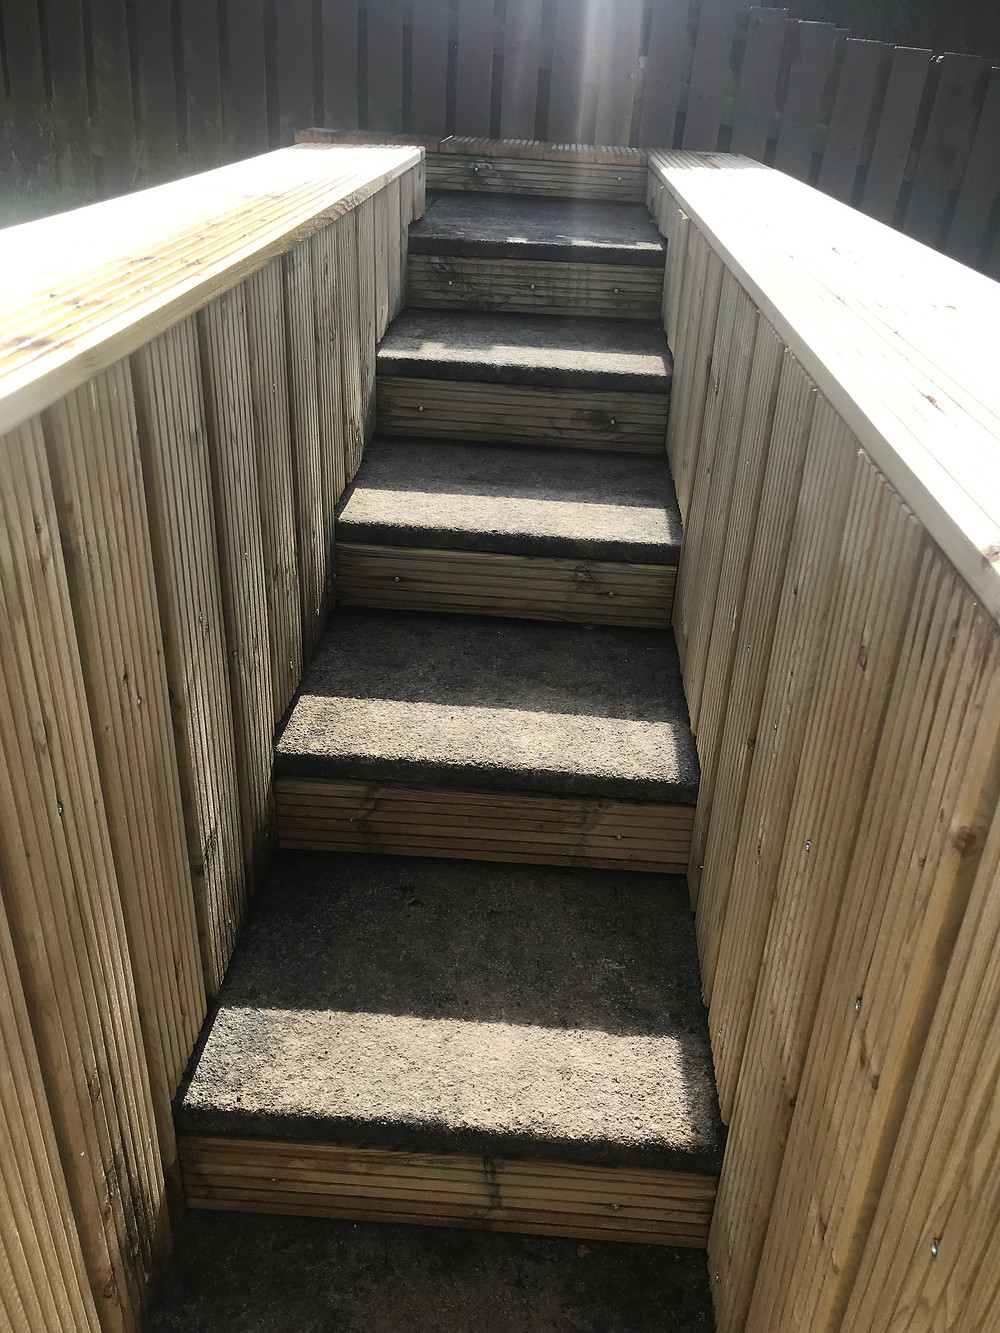 Staircase and steps clad with decking boards